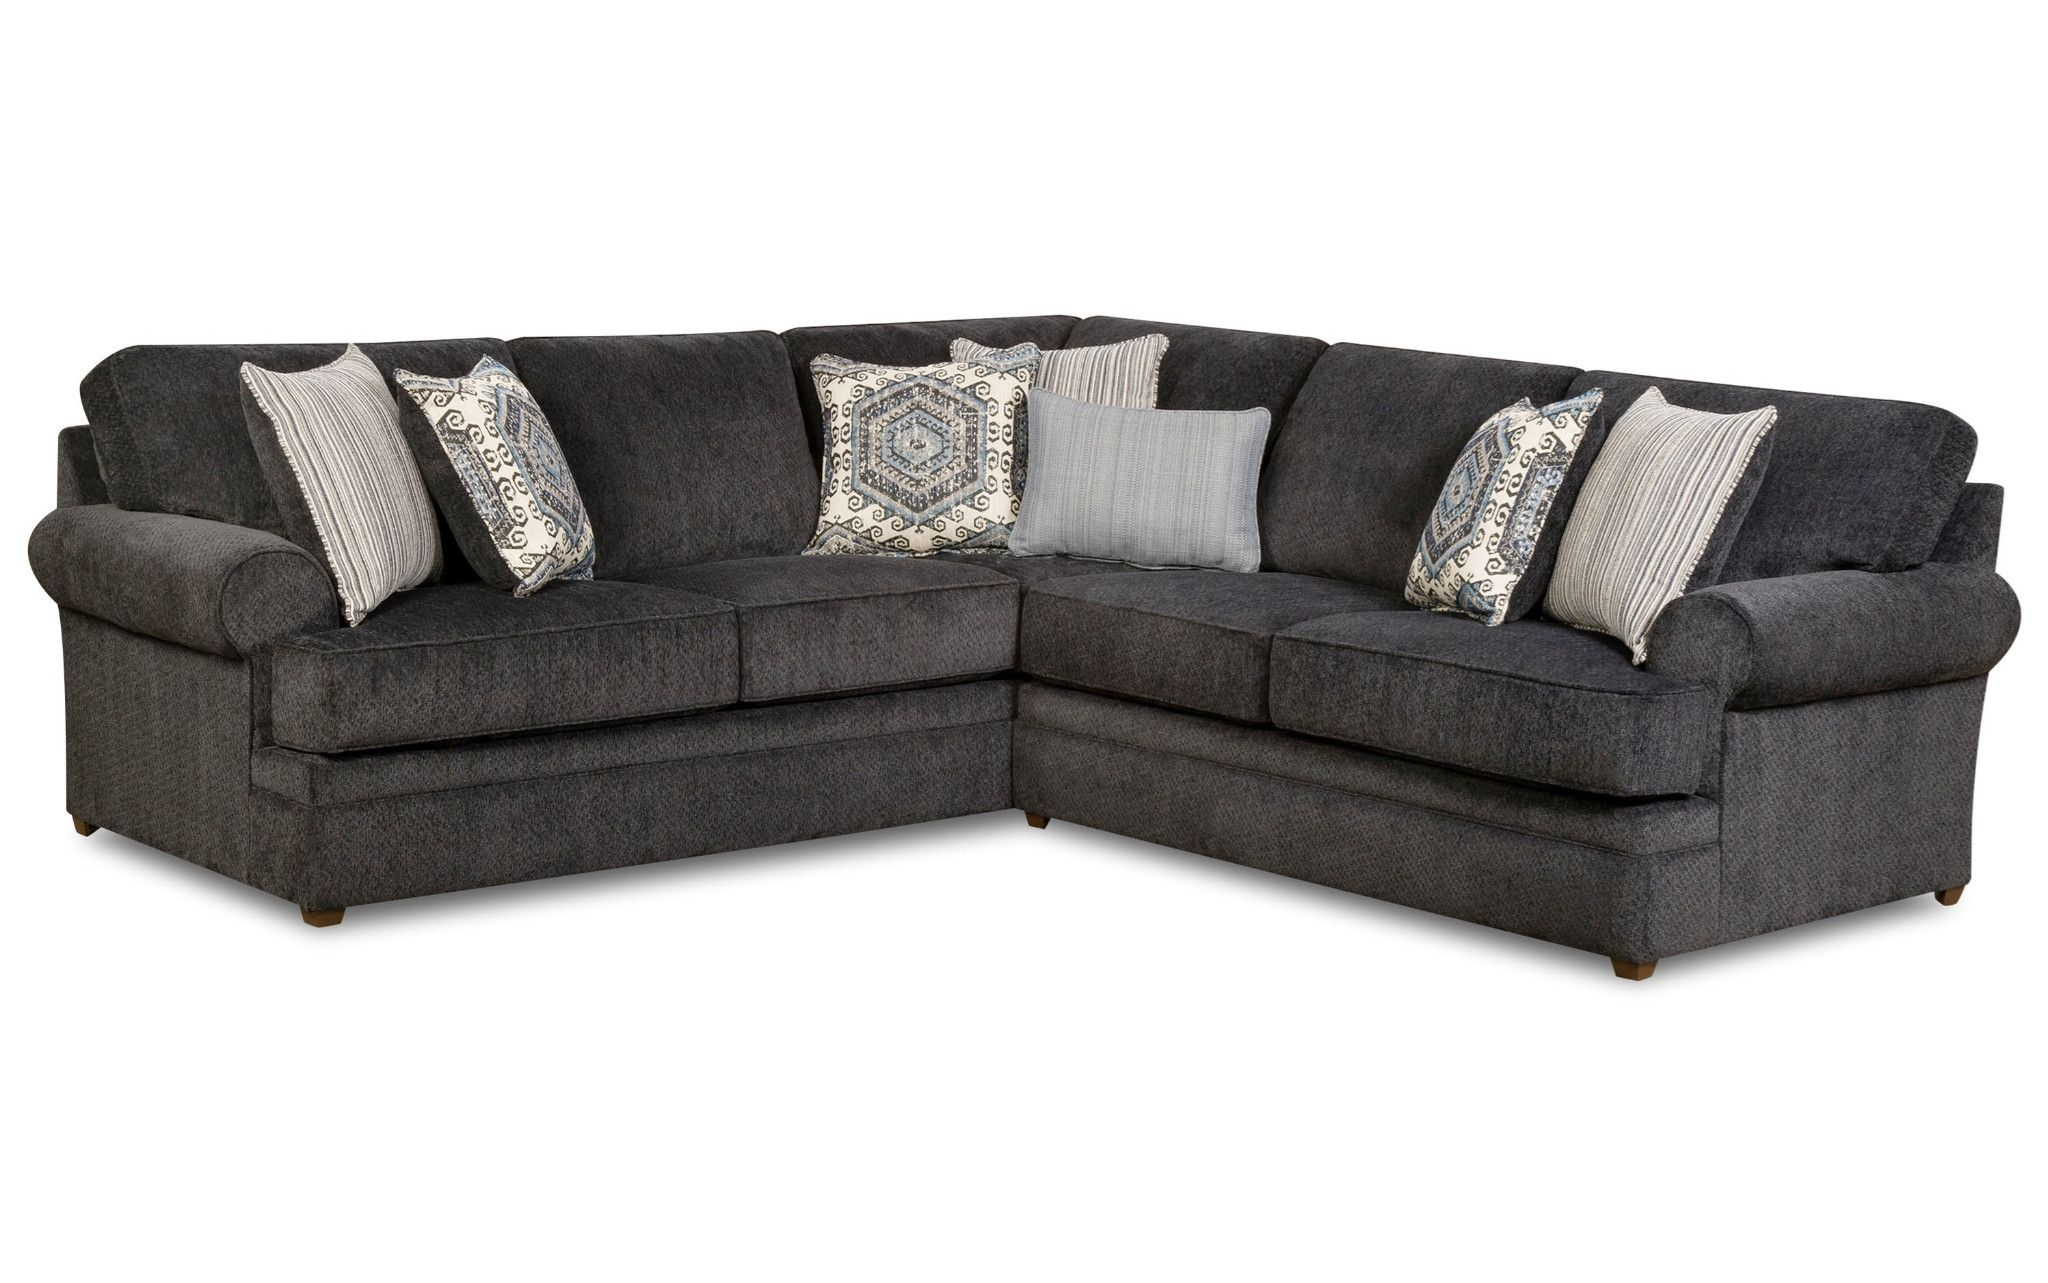 Bellamy Slate 2 Piece Sectional Beauty Rest By Simmons 899 00